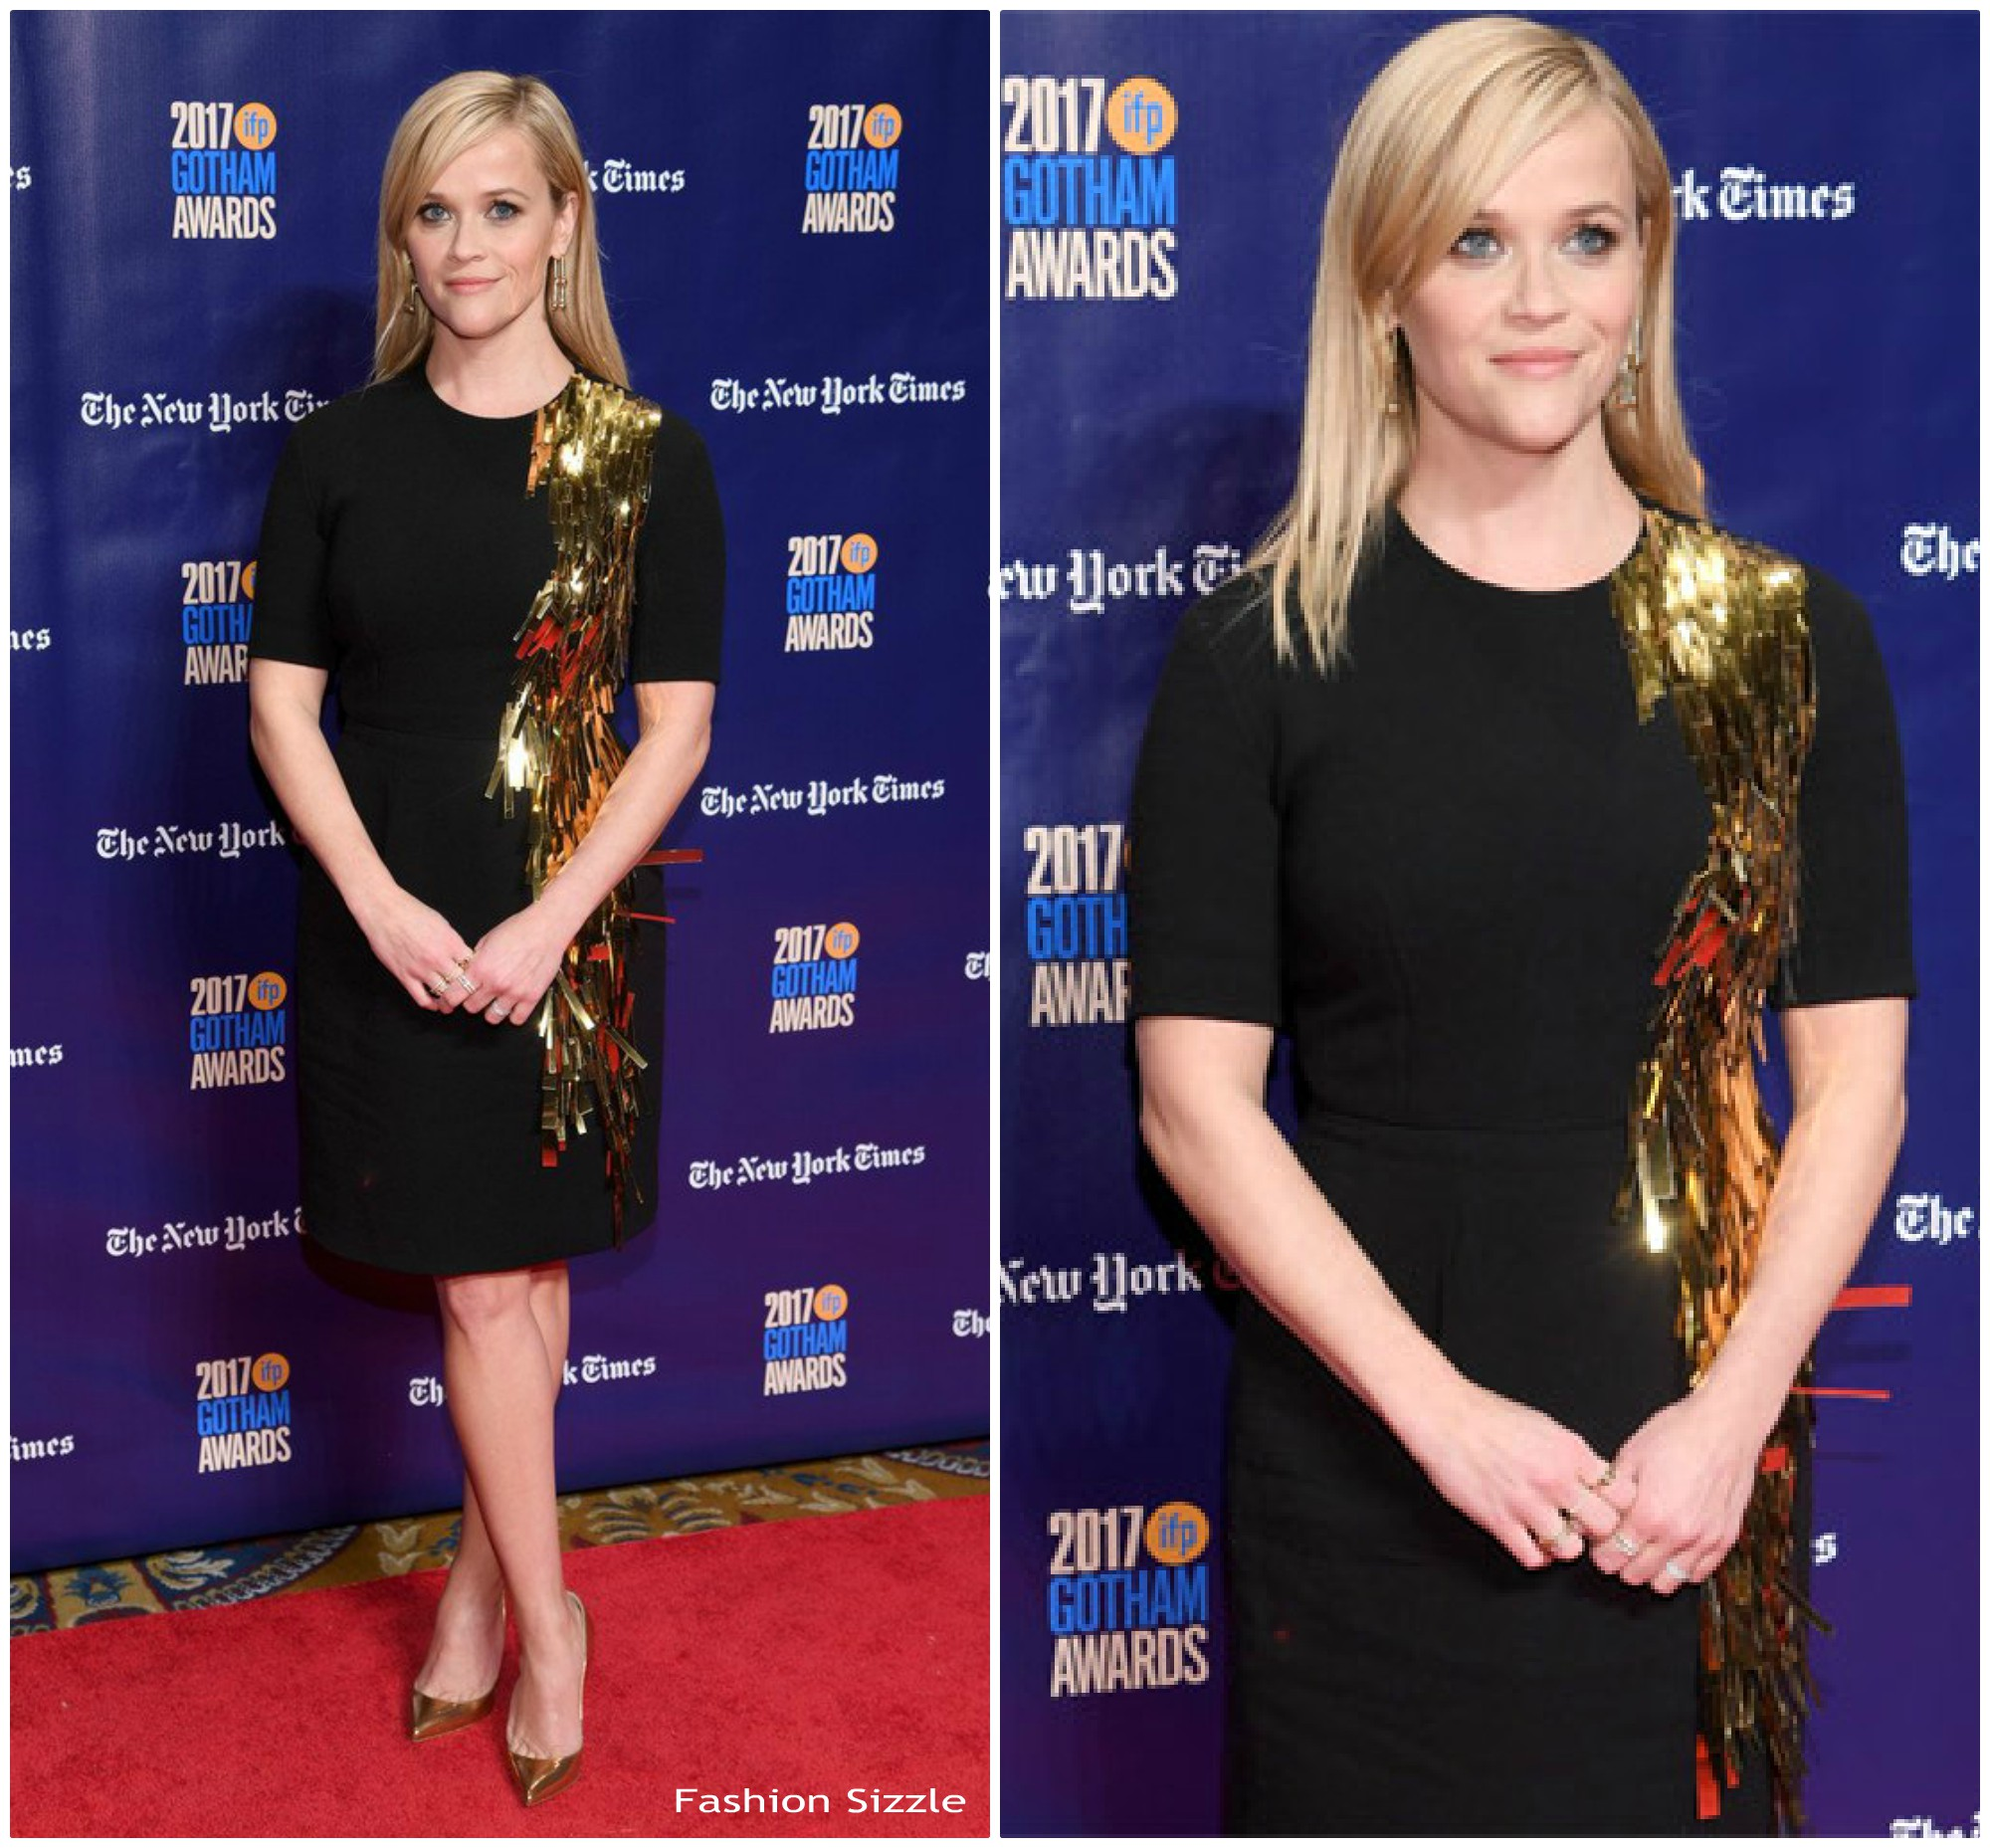 reese-witherspoon-in-oscar-de-la-renta-2017-gotham-independent-film-awards